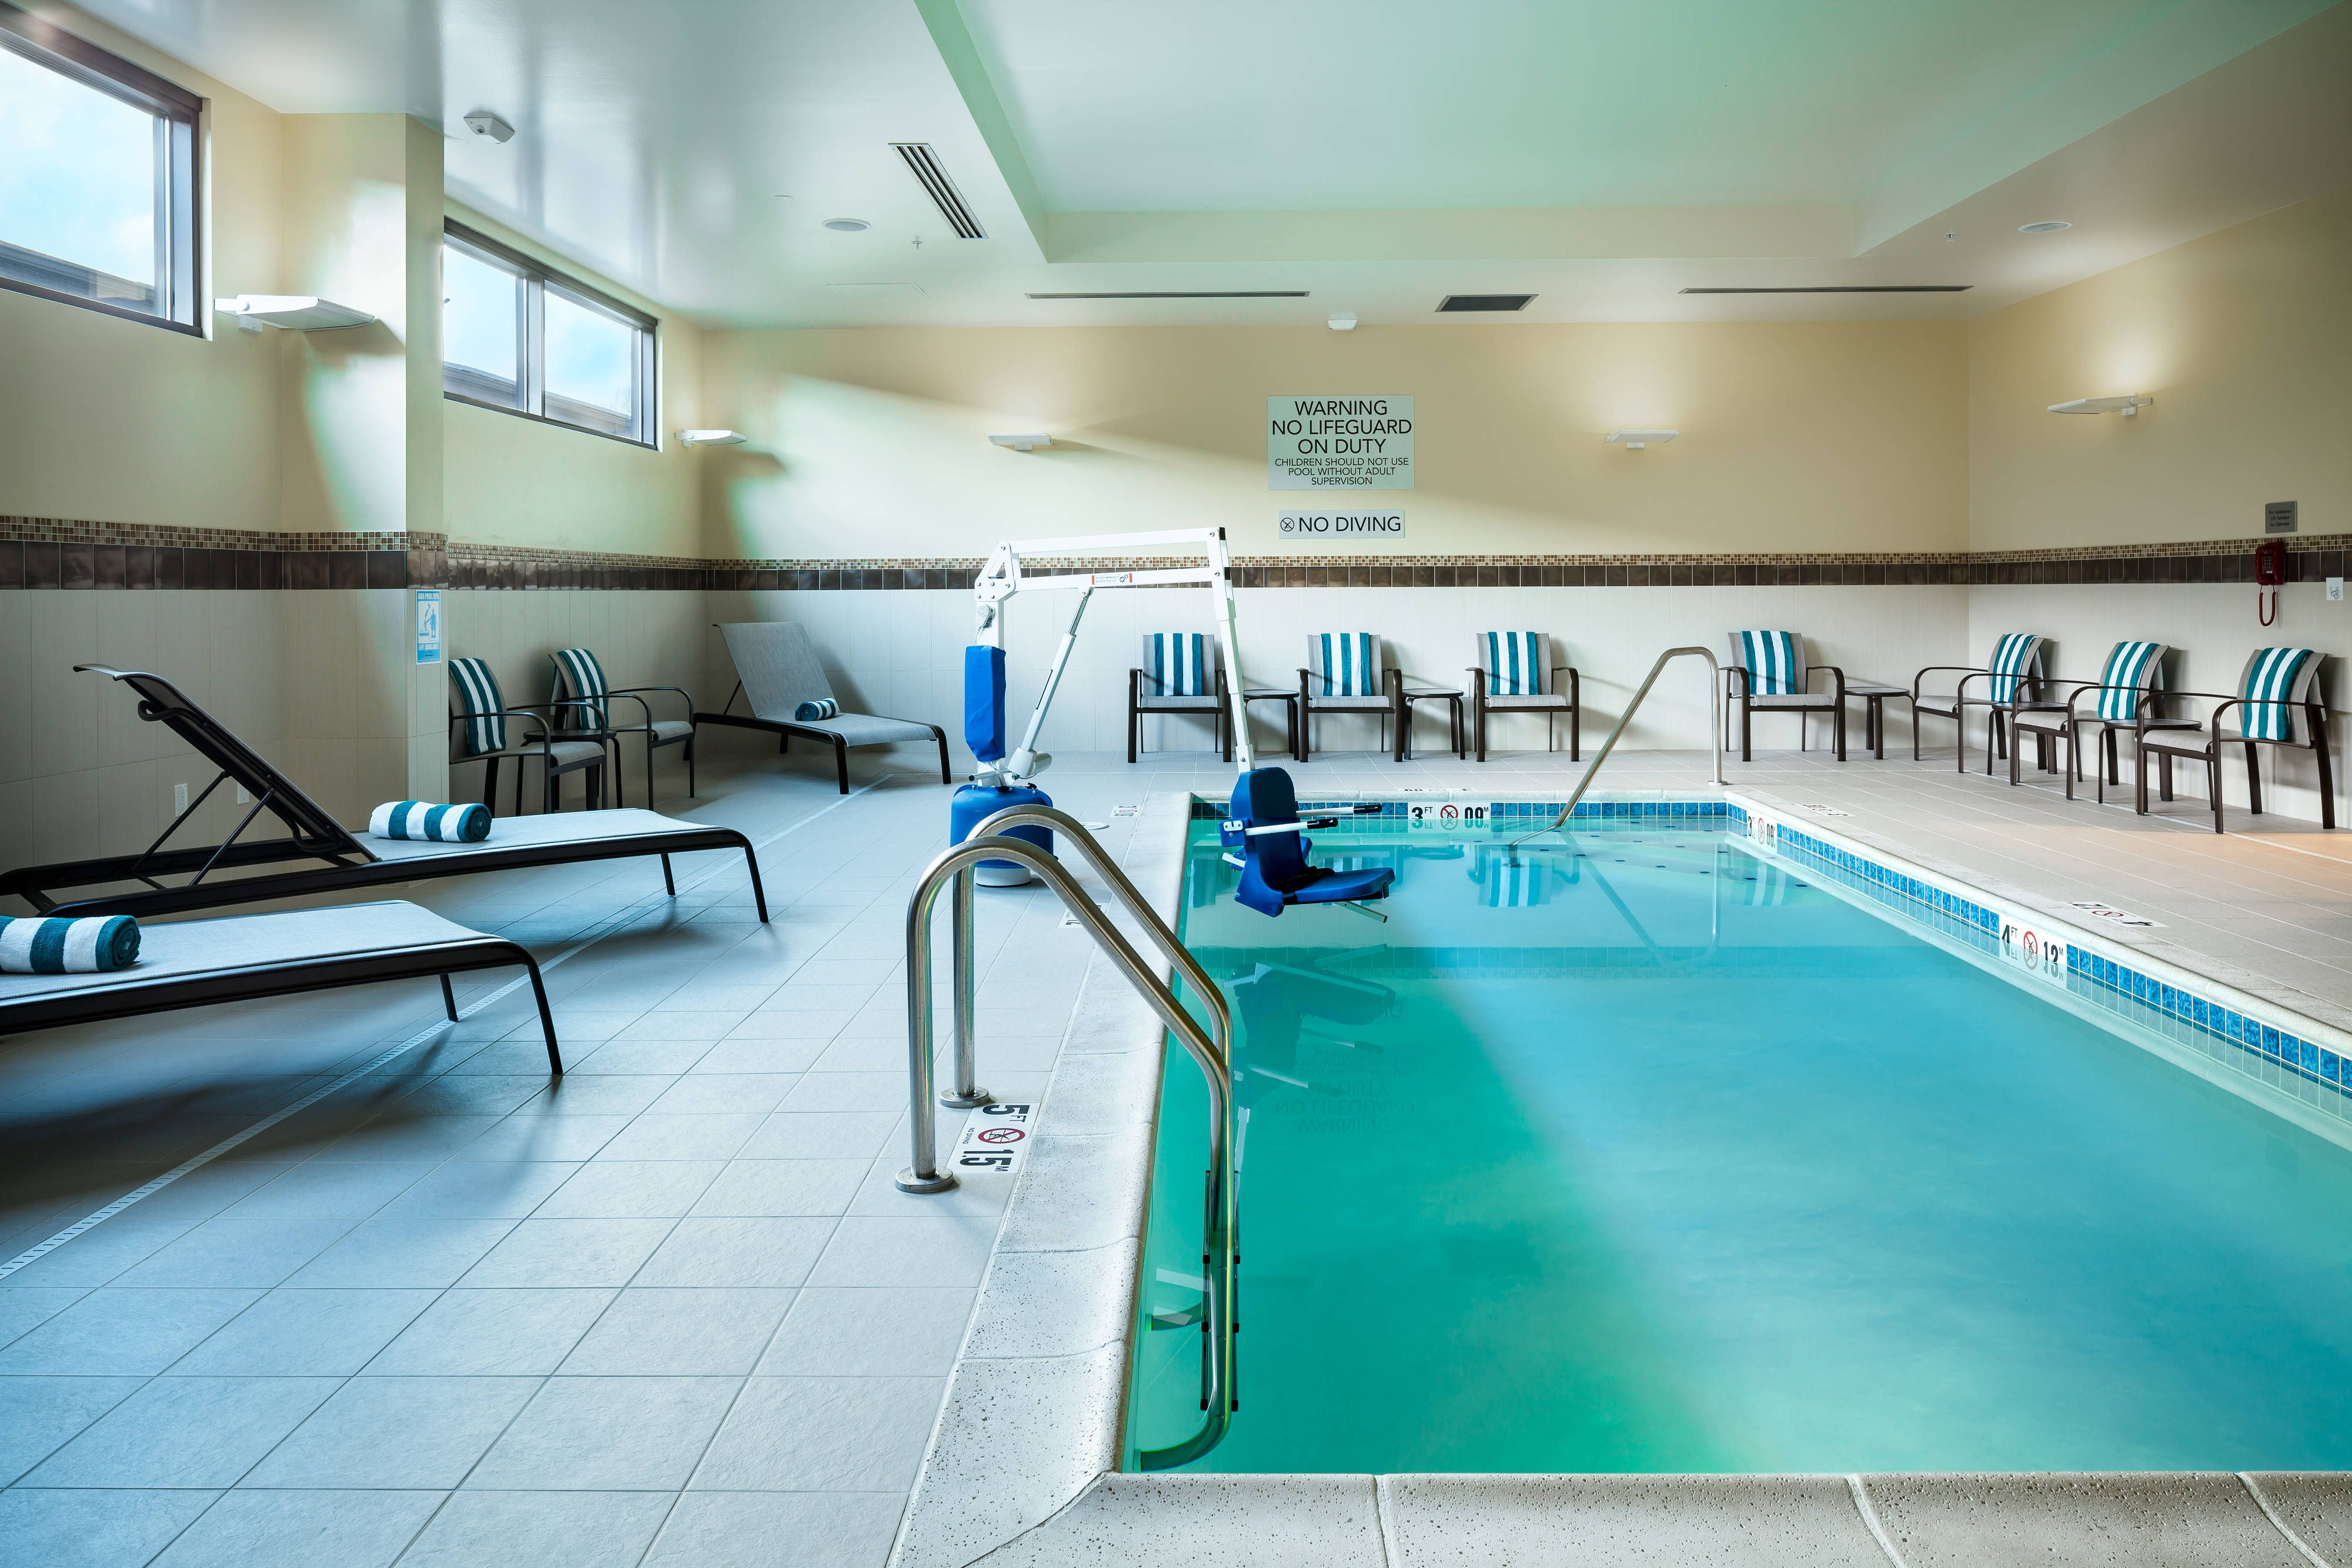 Courtyard Corvallis Indoor Pool #Relax, #Beautiful, #Happy,